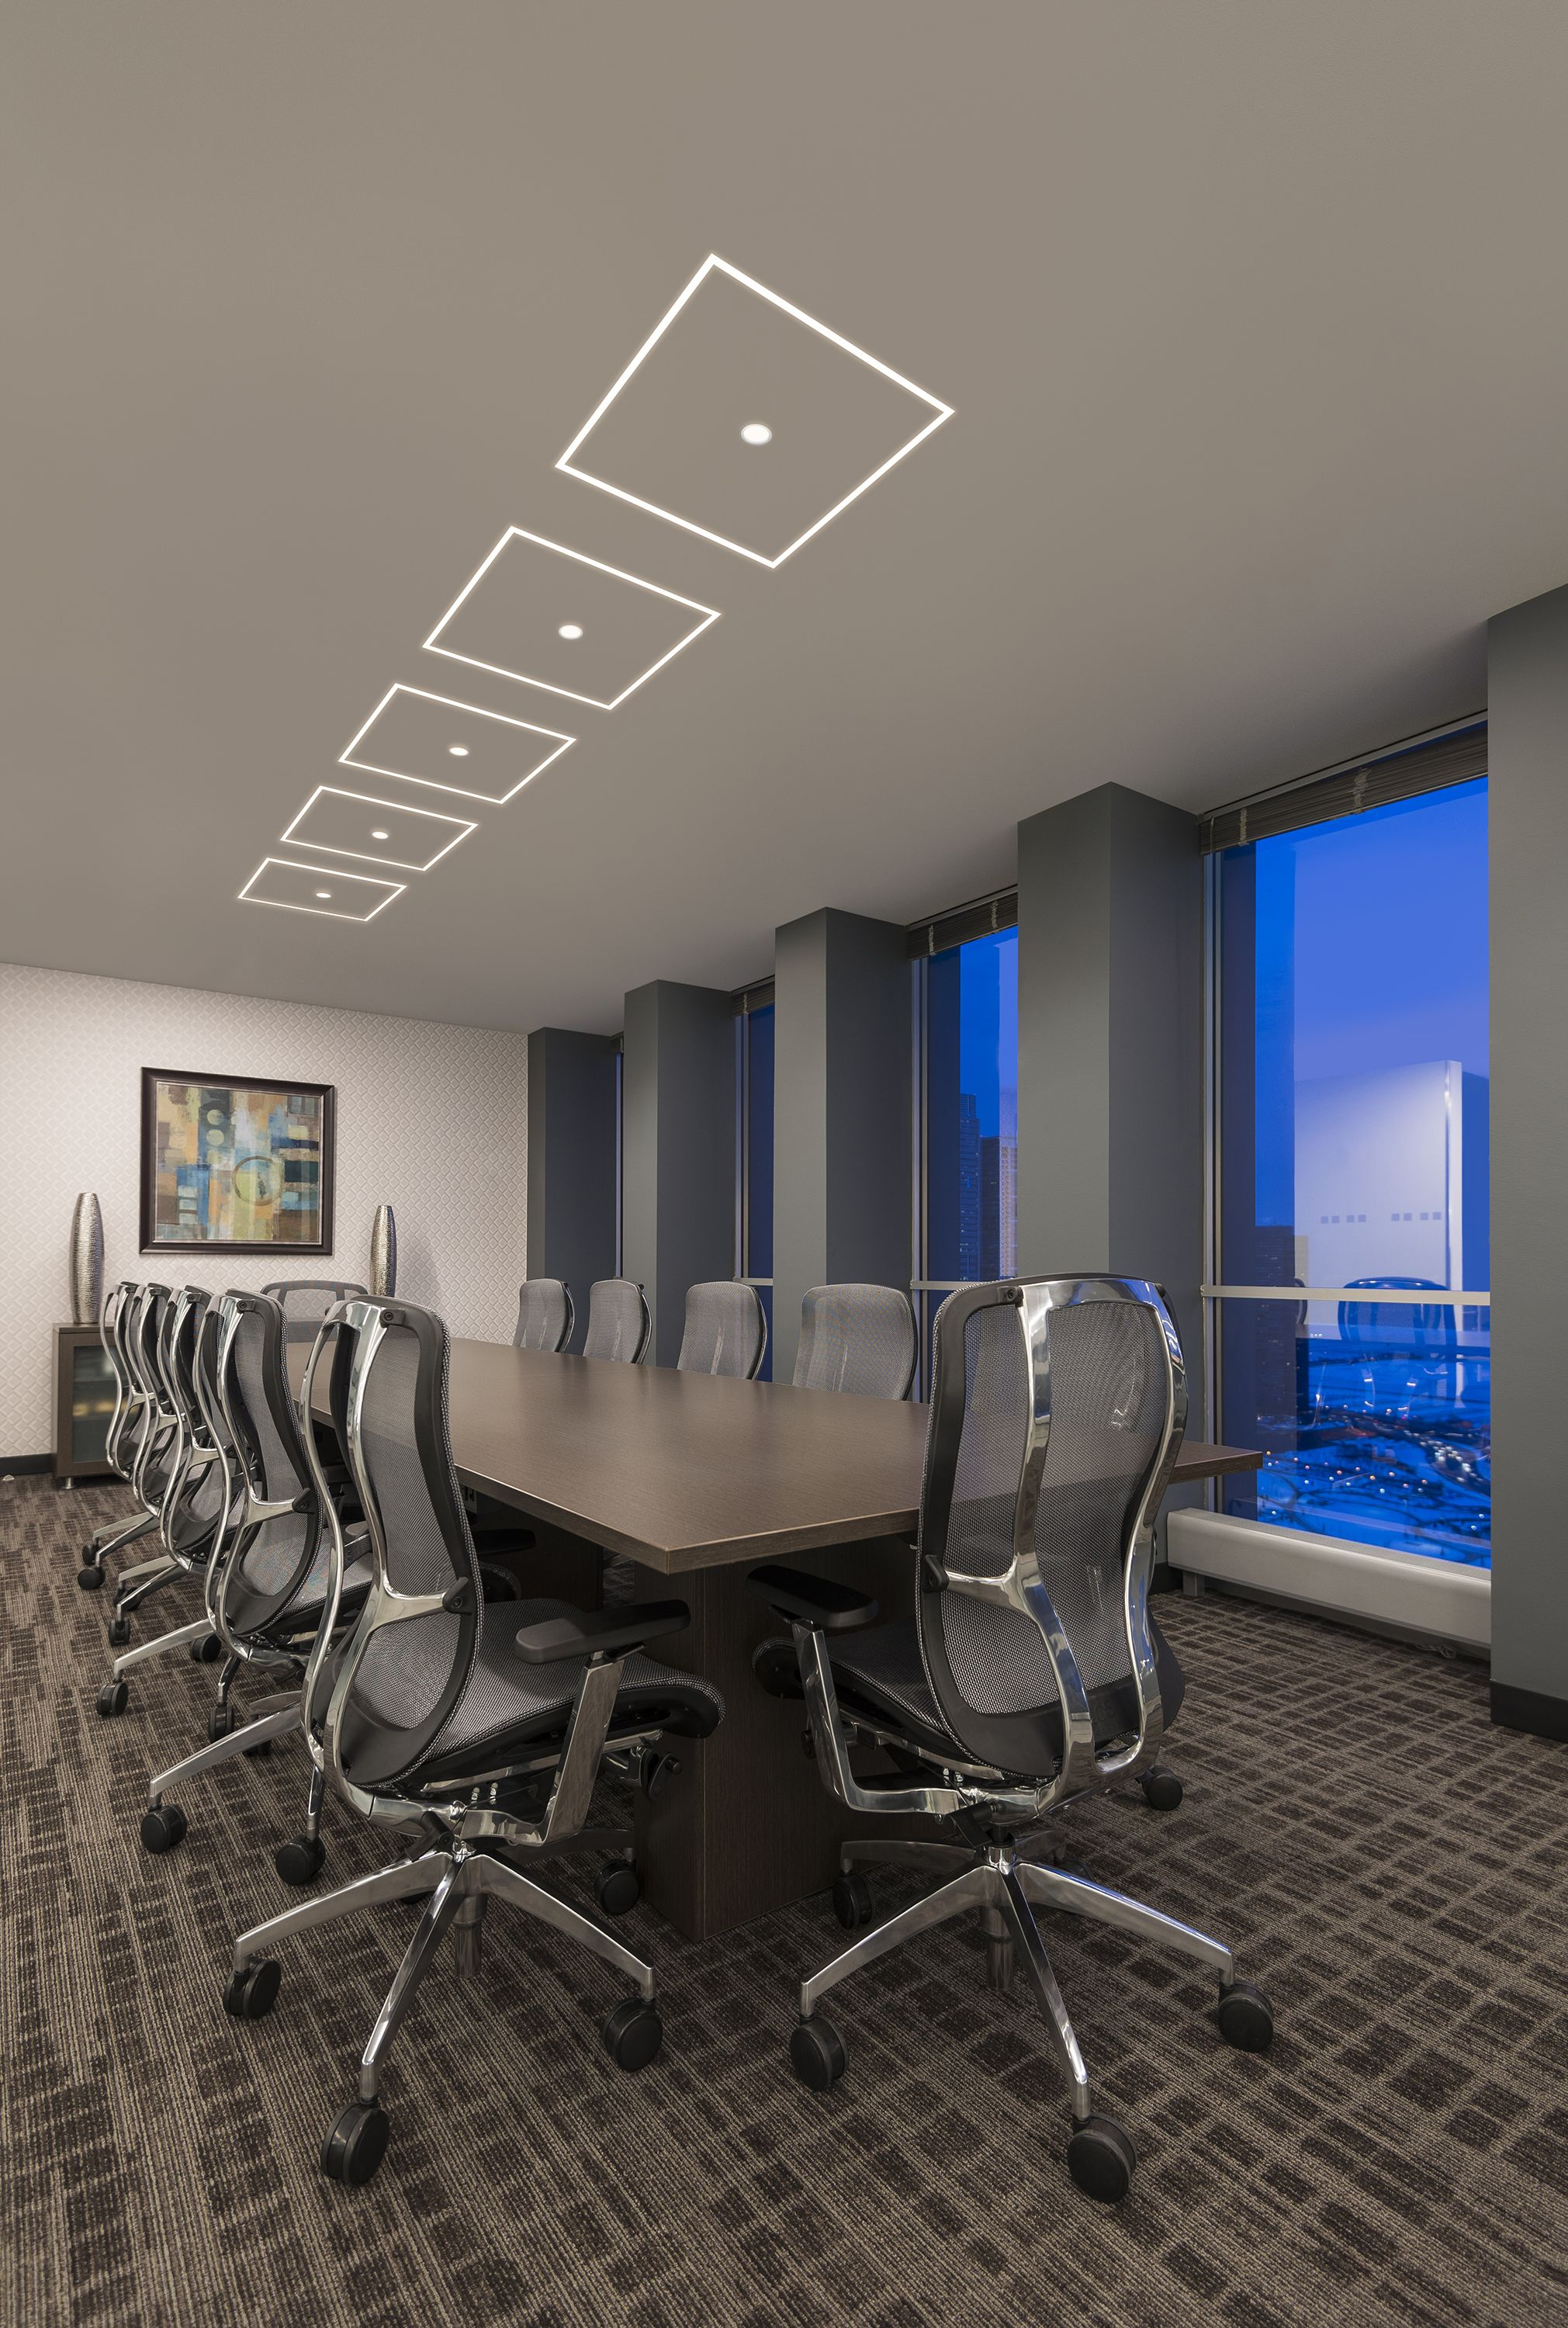 Conference Room Lighting Design: Office Conference Room LED Lighting Idea